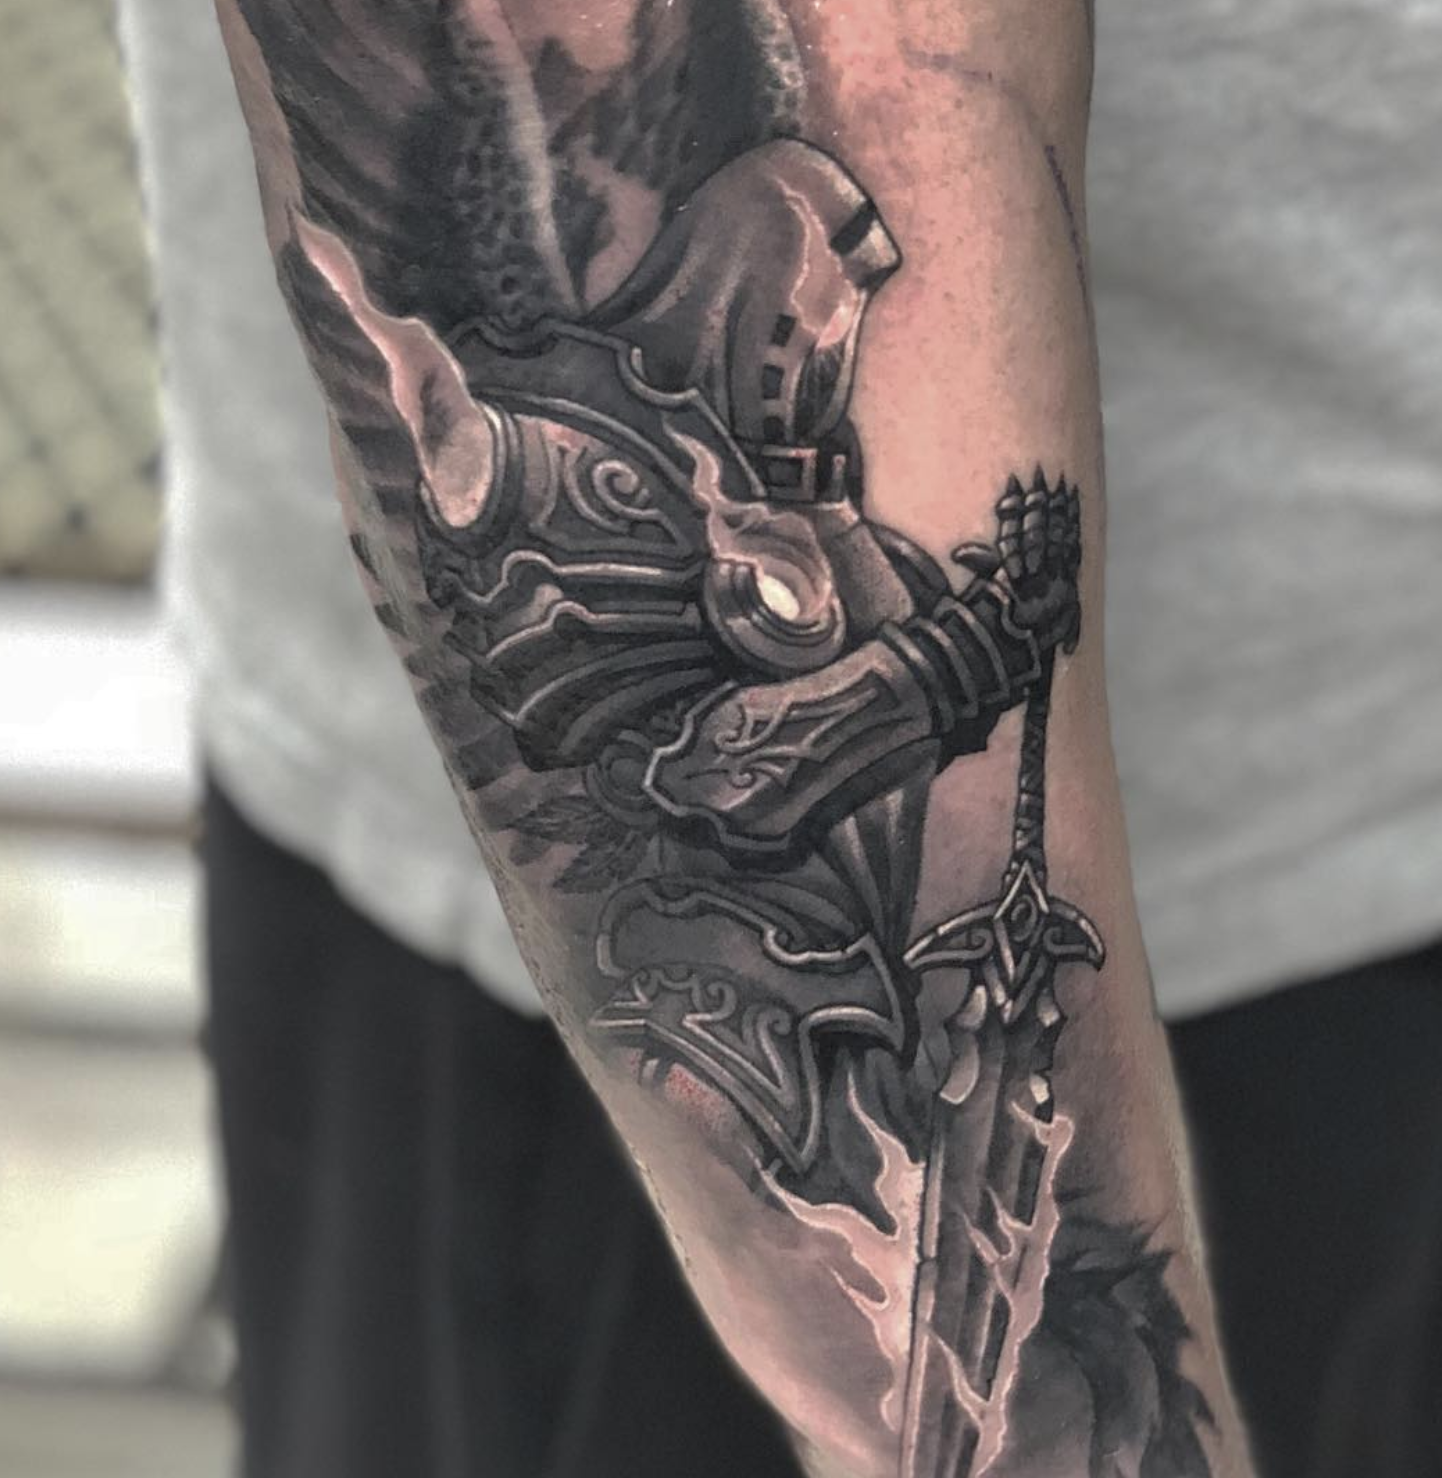 Jared Weippert - North Street Tattoo